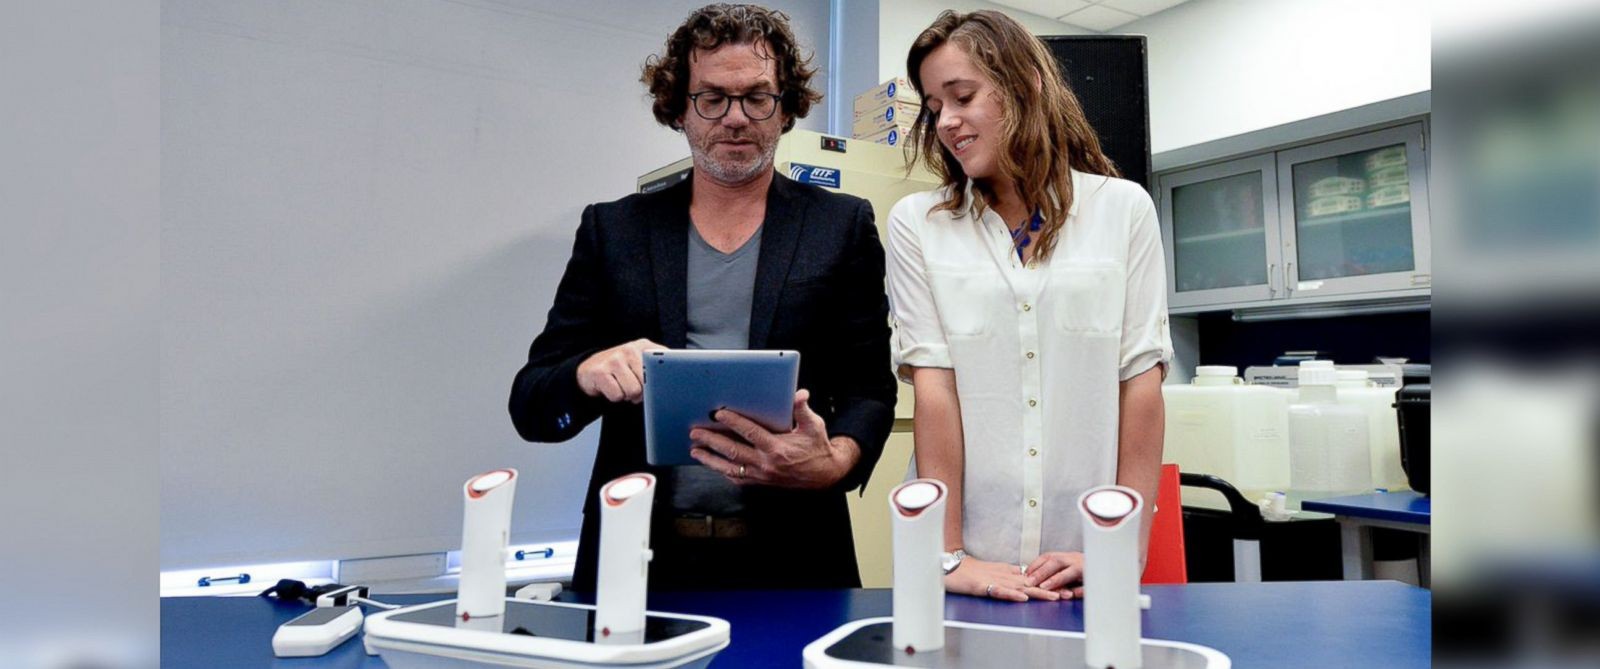 PHOTO: Inventor David Edwards and his partner Rachel Field demonstrate a system for electronically tagging and transmitting scents through the internet called the oPhone on June 17, 2014.